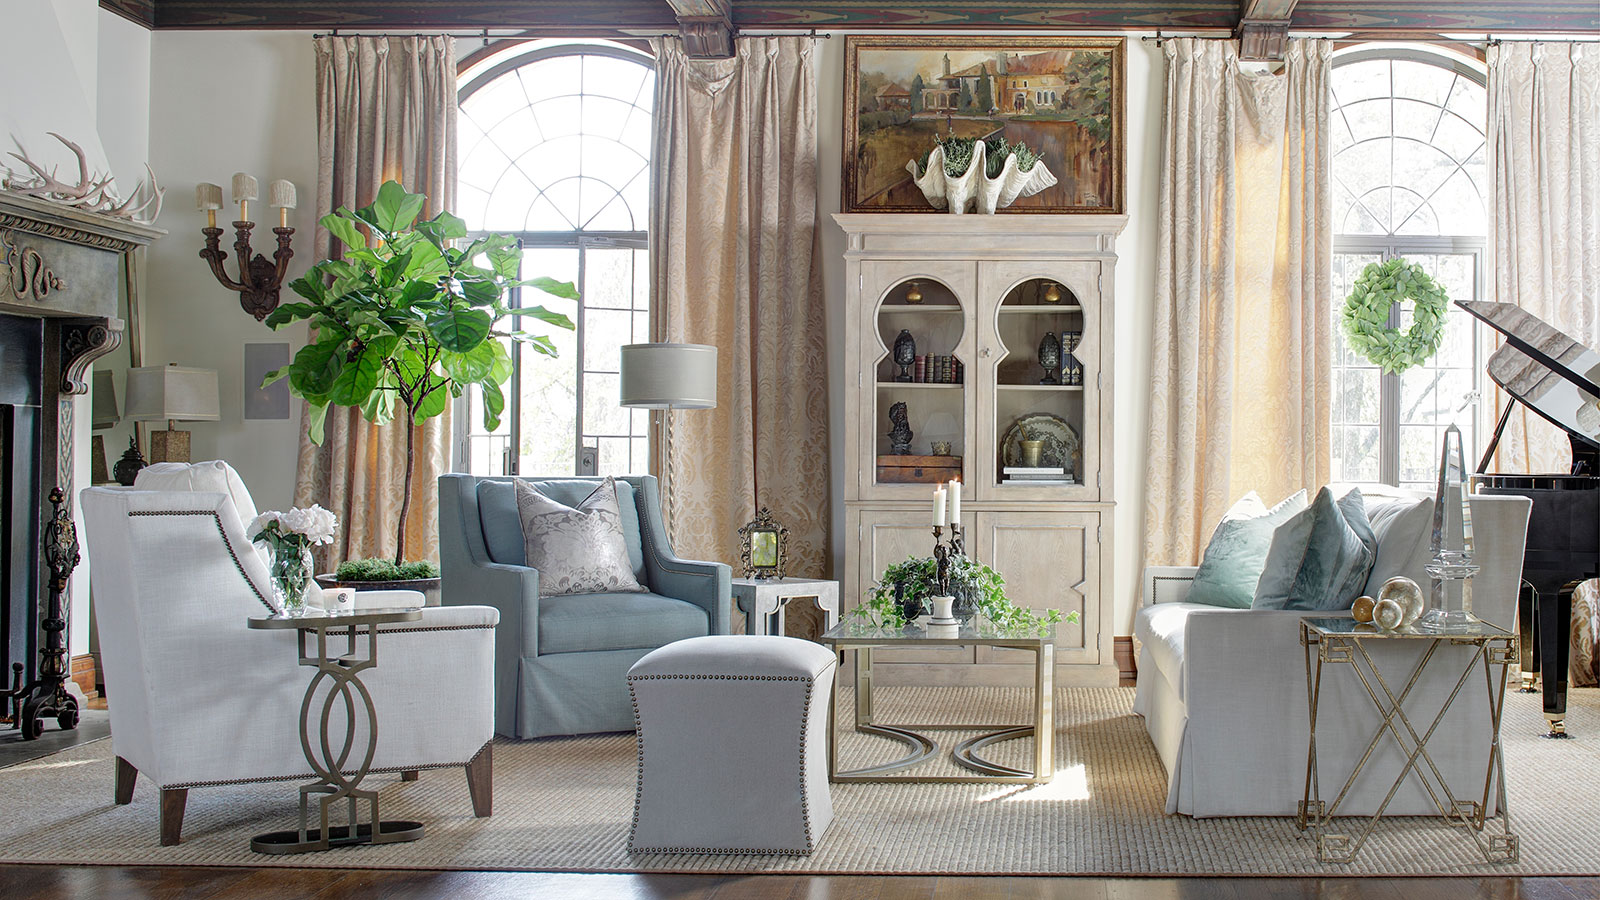 Reflections on Transitional Furniture Style